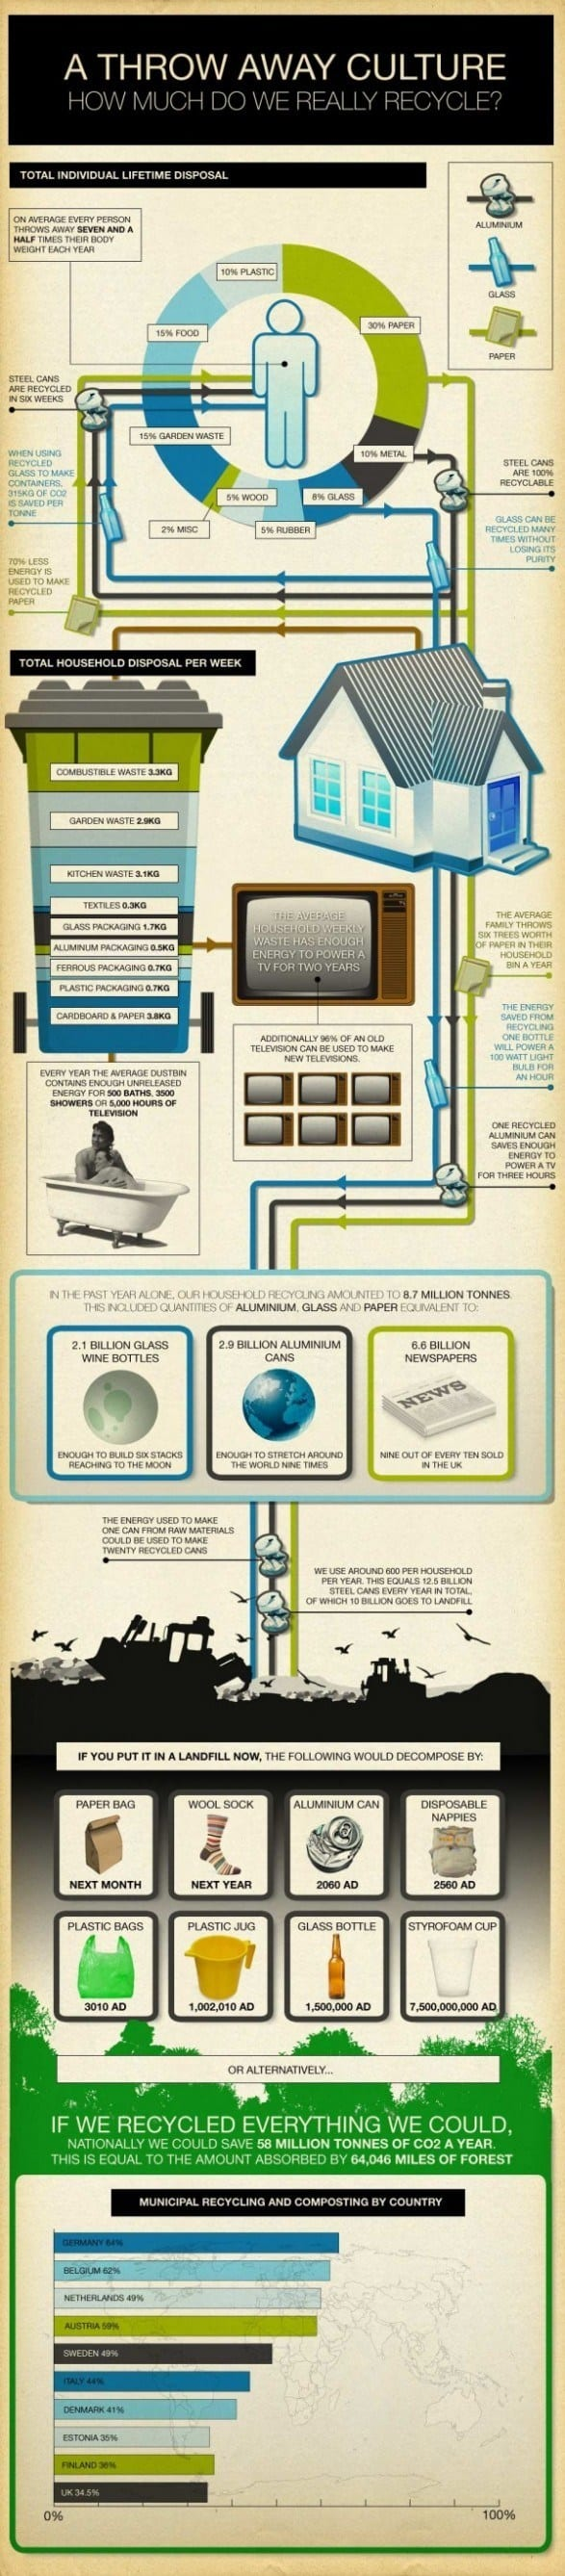 Throw Away Culture infographic